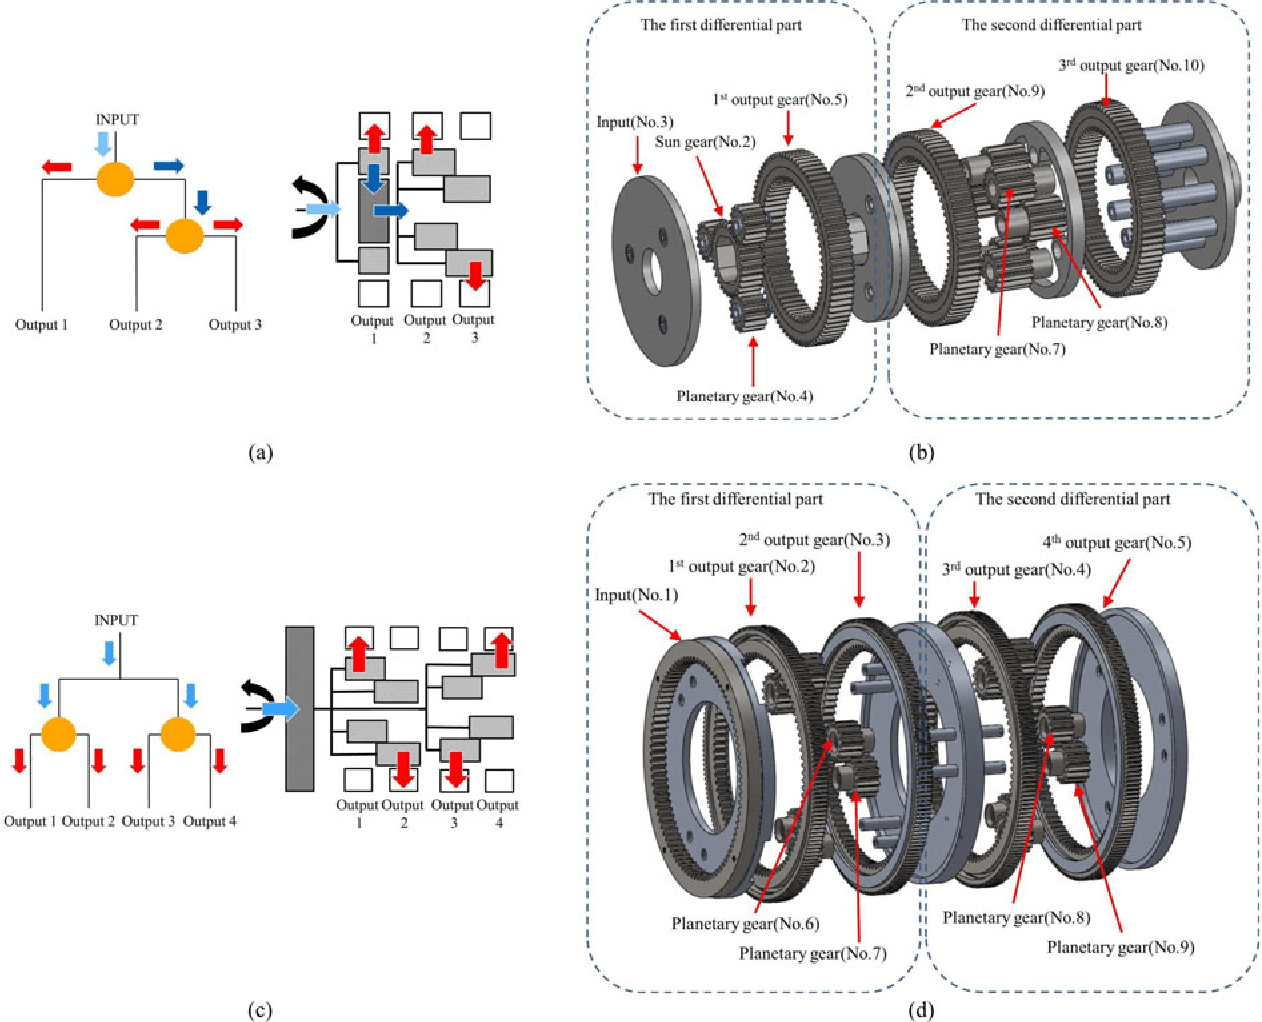 hight resolution of multiaxial differential gear mechanism a schematic of 1